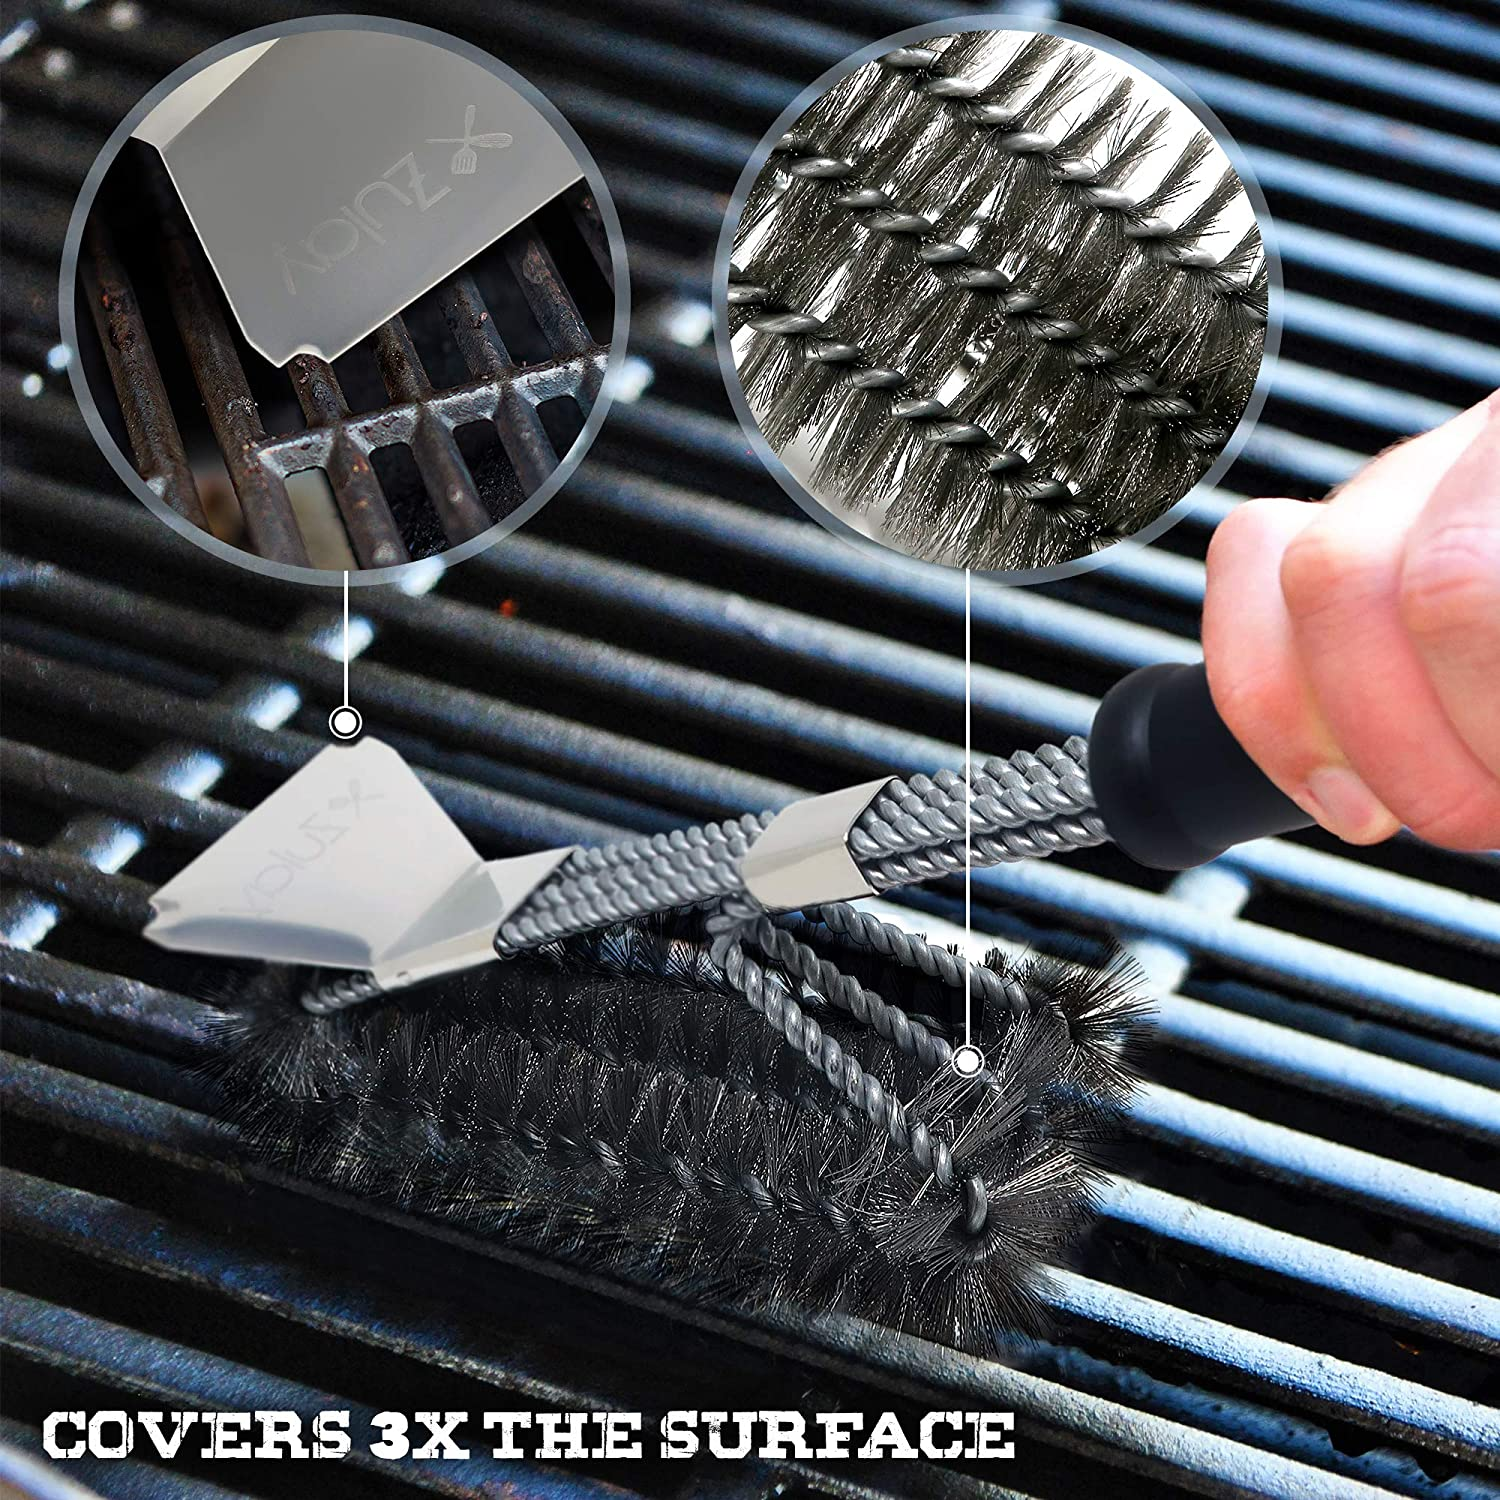 Heat Boss Grill Brush and Grill Scraper, 3 Rows of Reinforced Stainless Steel Bristles, Best Heavy Duty Grill Cleaner Safe for All Grill Types, Long ...